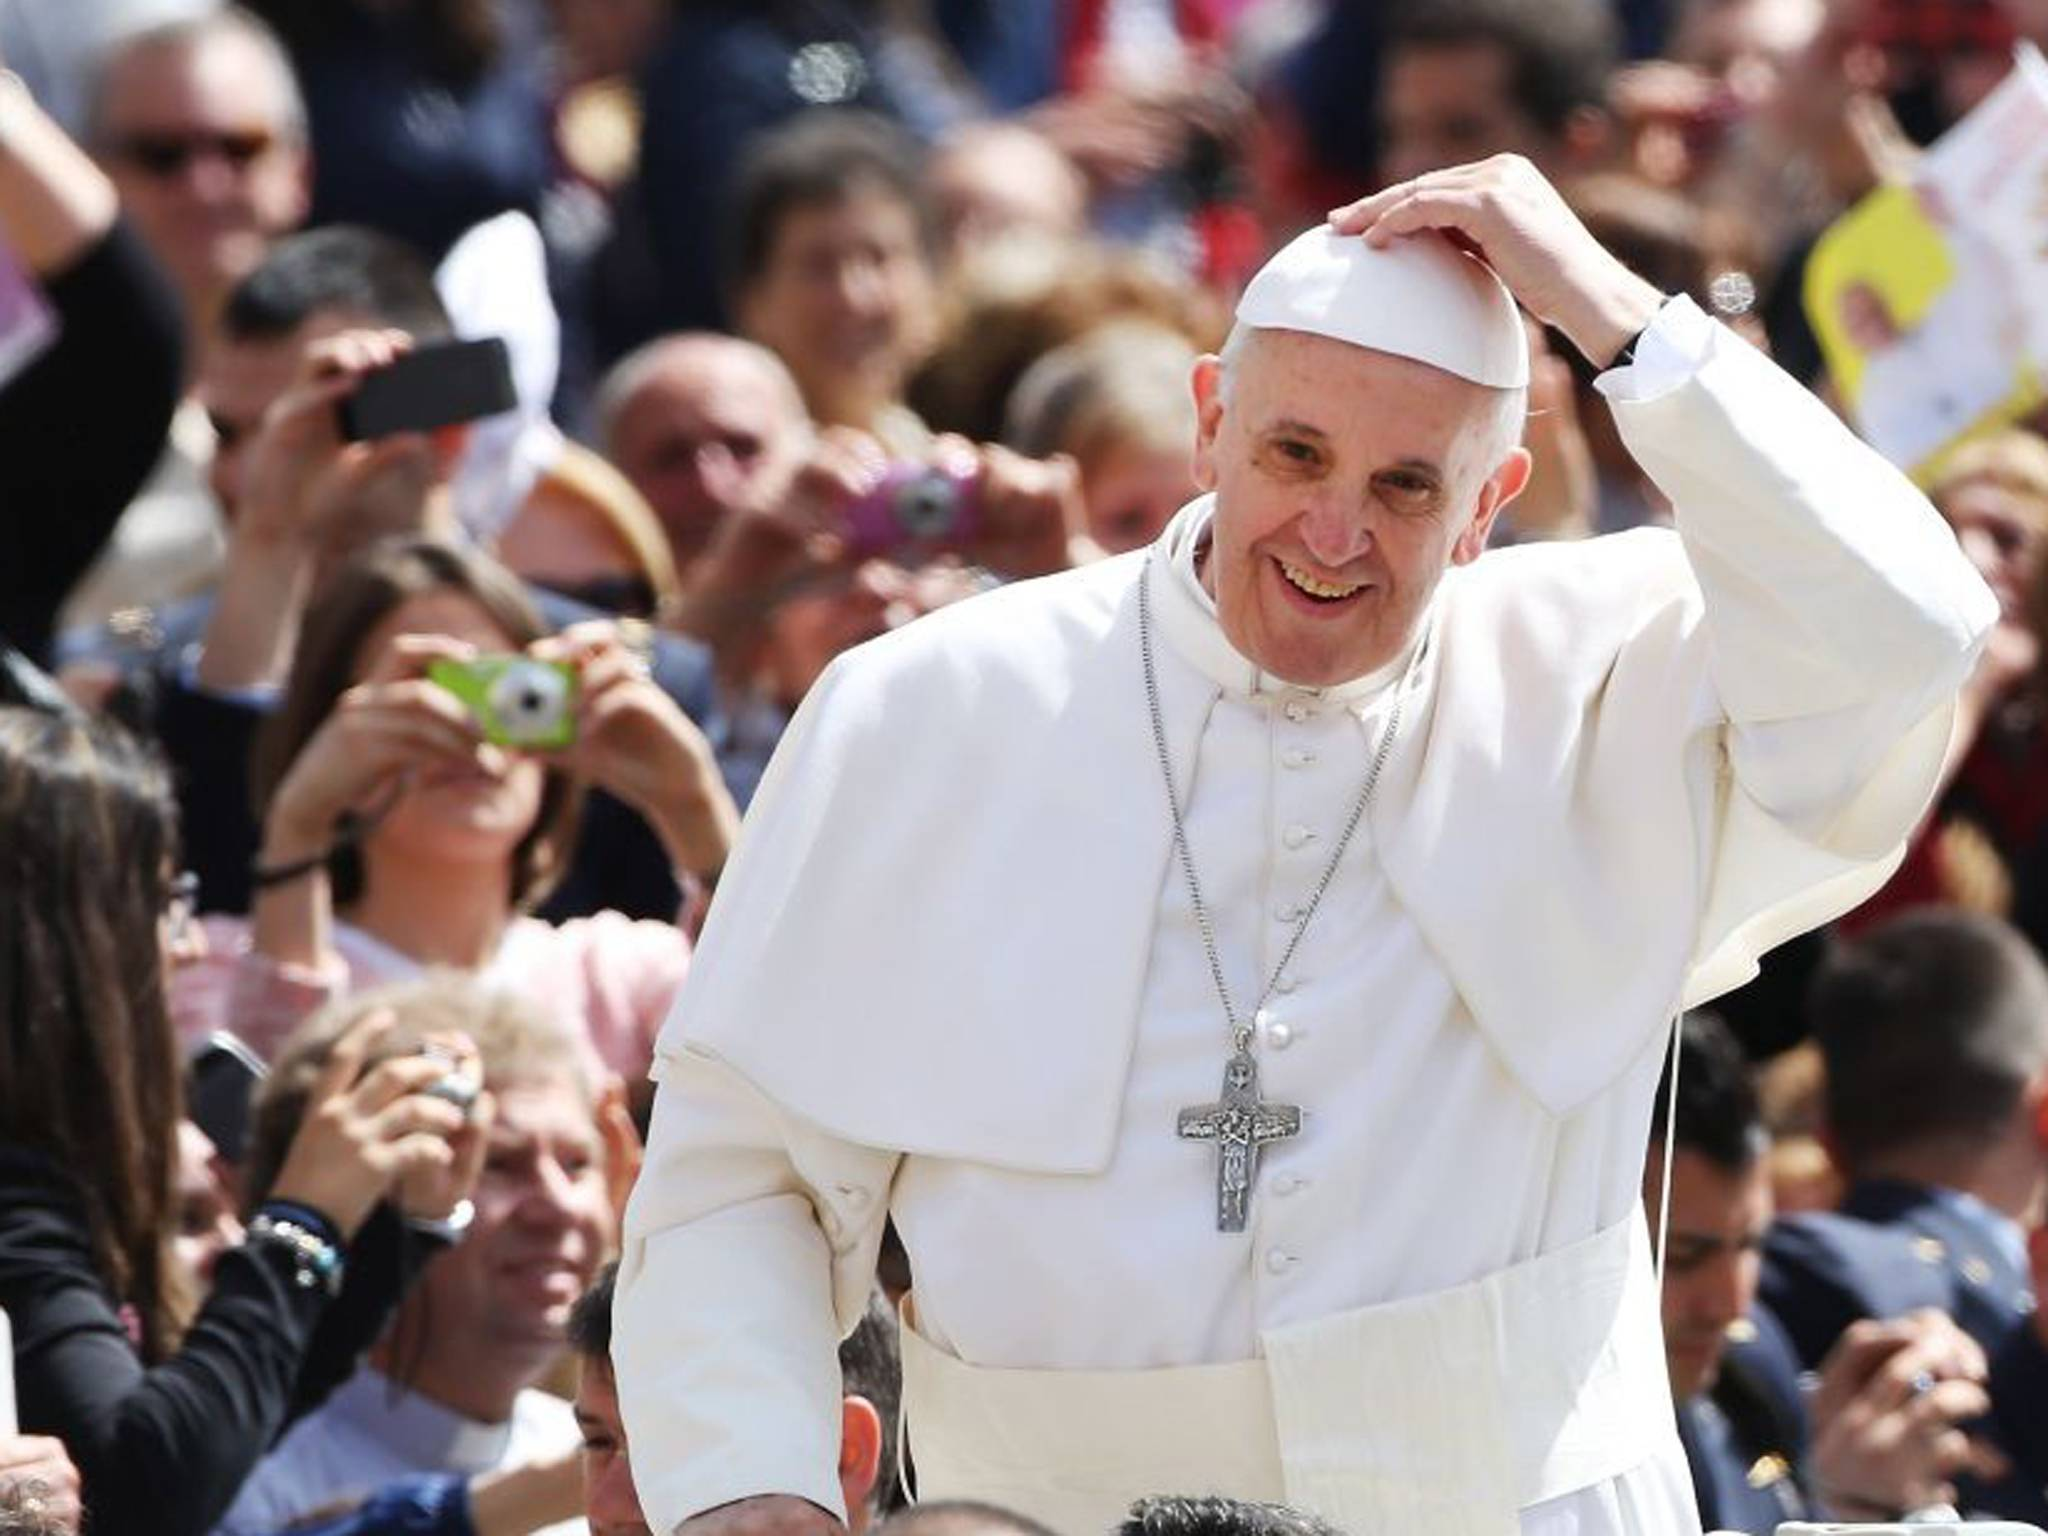 """Pope Francis, after Returning from Brazil Where He Attended the World Youth Day : """"Who Am I to Judge Gay People?!"""""""